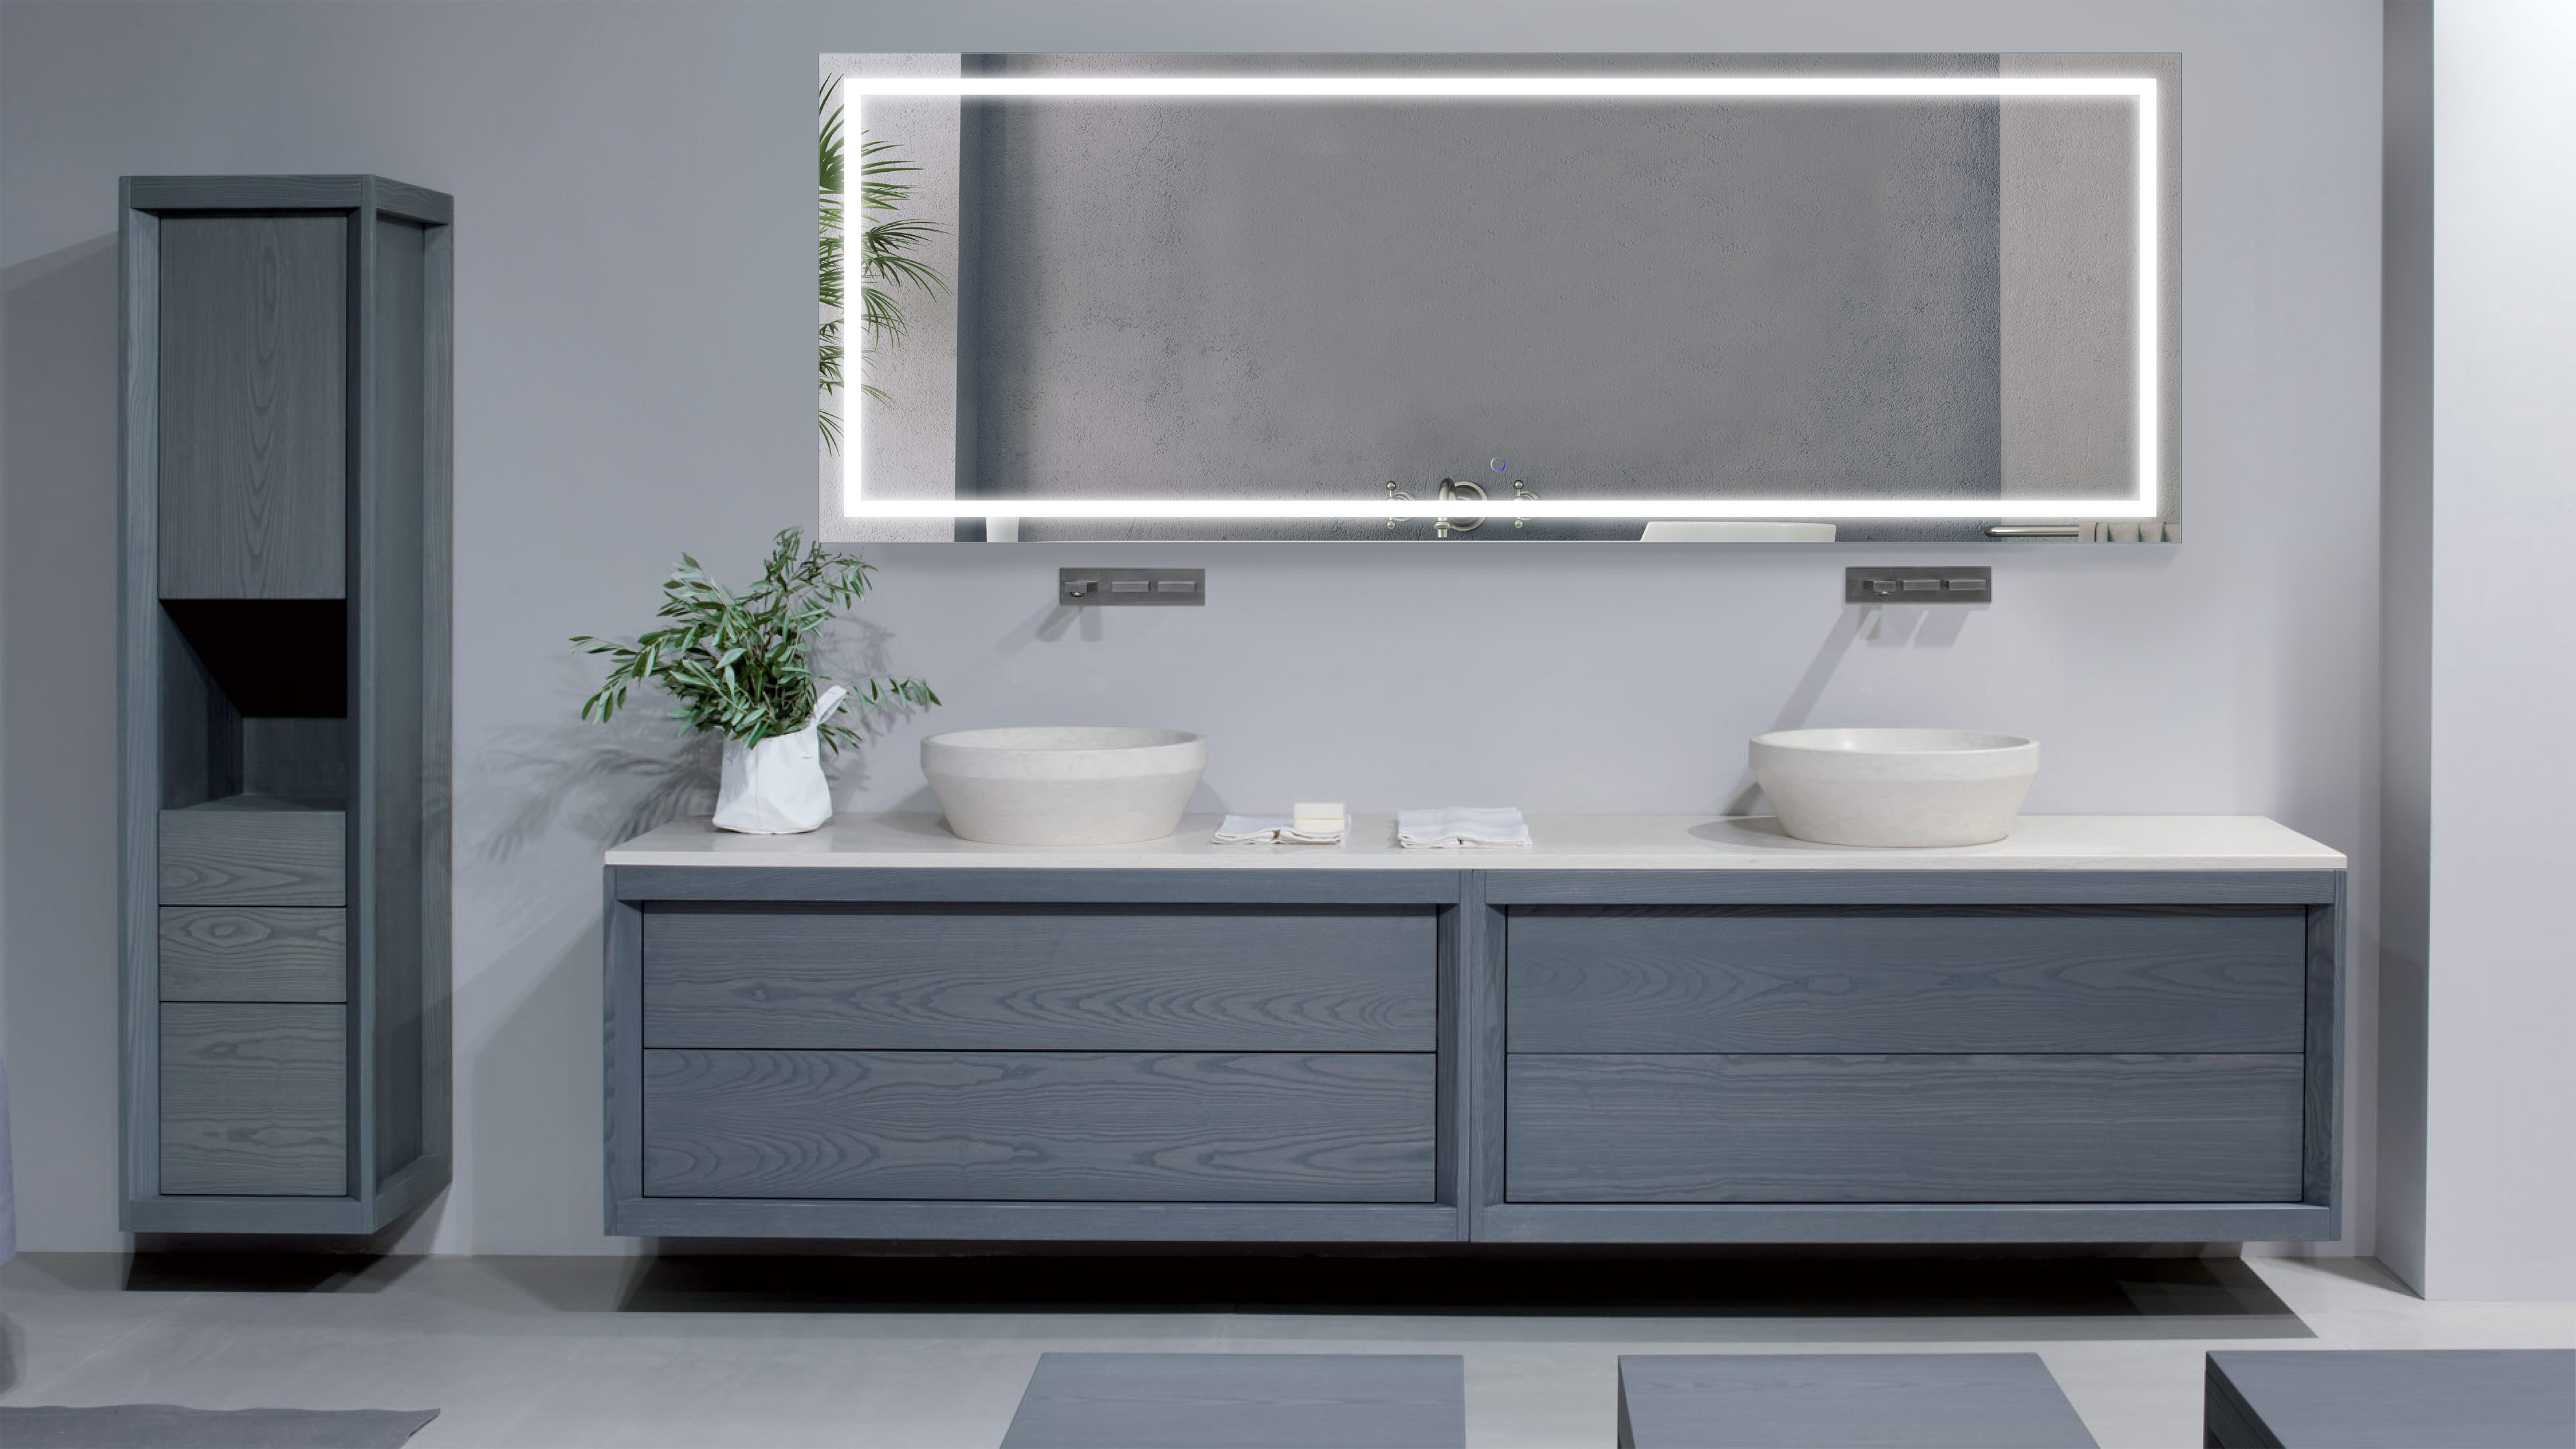 Large 84 inch x 30 inch led bathroom mirror lighted vanity mirror includes dimmer defogger for Bathroom vanity mirror with built in lights